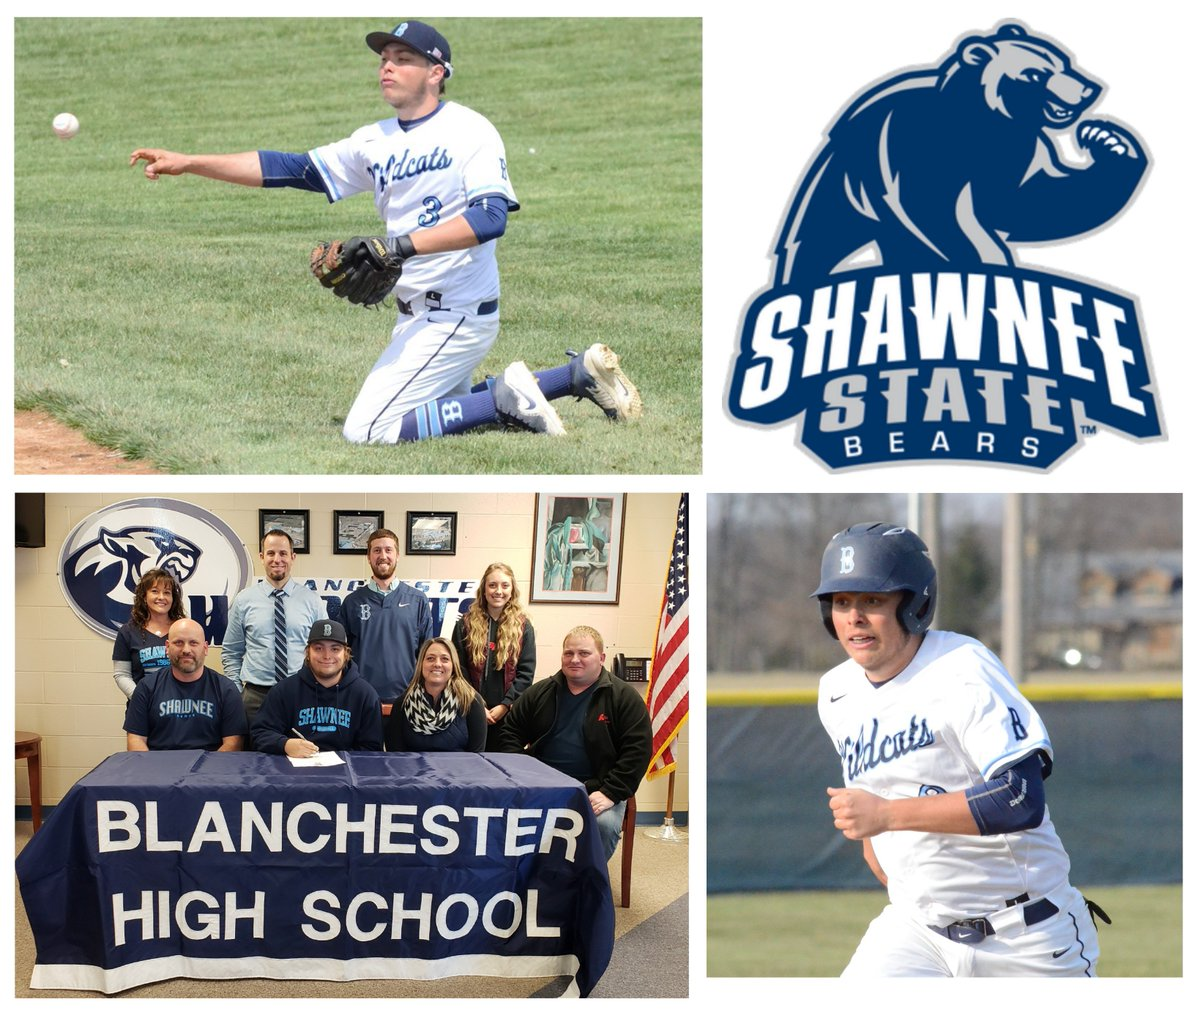 Congratulations Dustin Howard! Today he signed to continue his baseball career at Shawnee State University. #BluePride  @D_How_35 @Lawson_18_108 @blanhs @wnjsports<br>http://pic.twitter.com/2HH33kwH4B